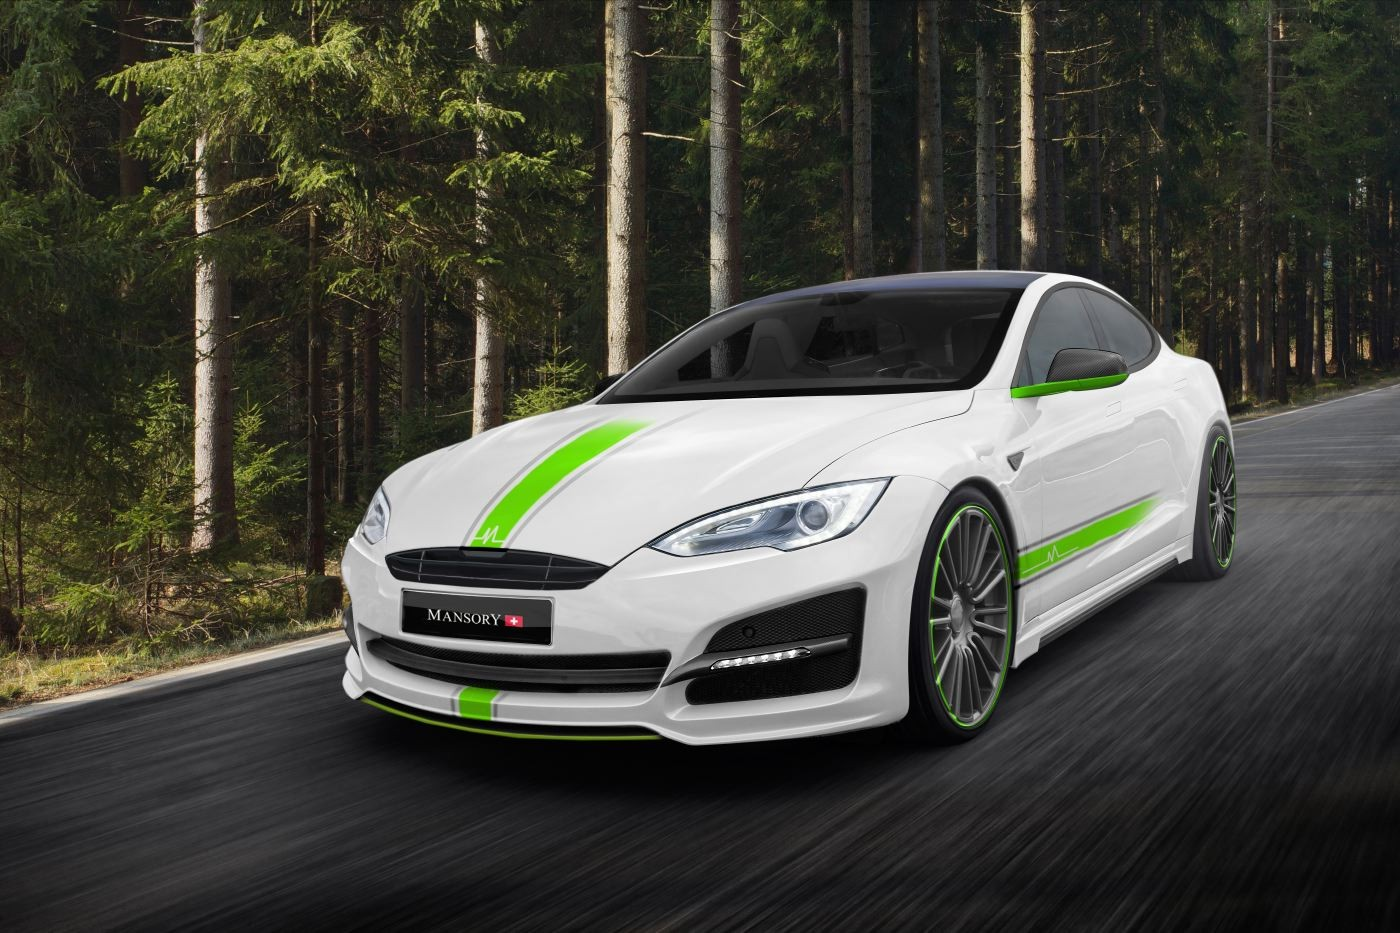 tesla_s_mansory_front_white_fluo_green_m10